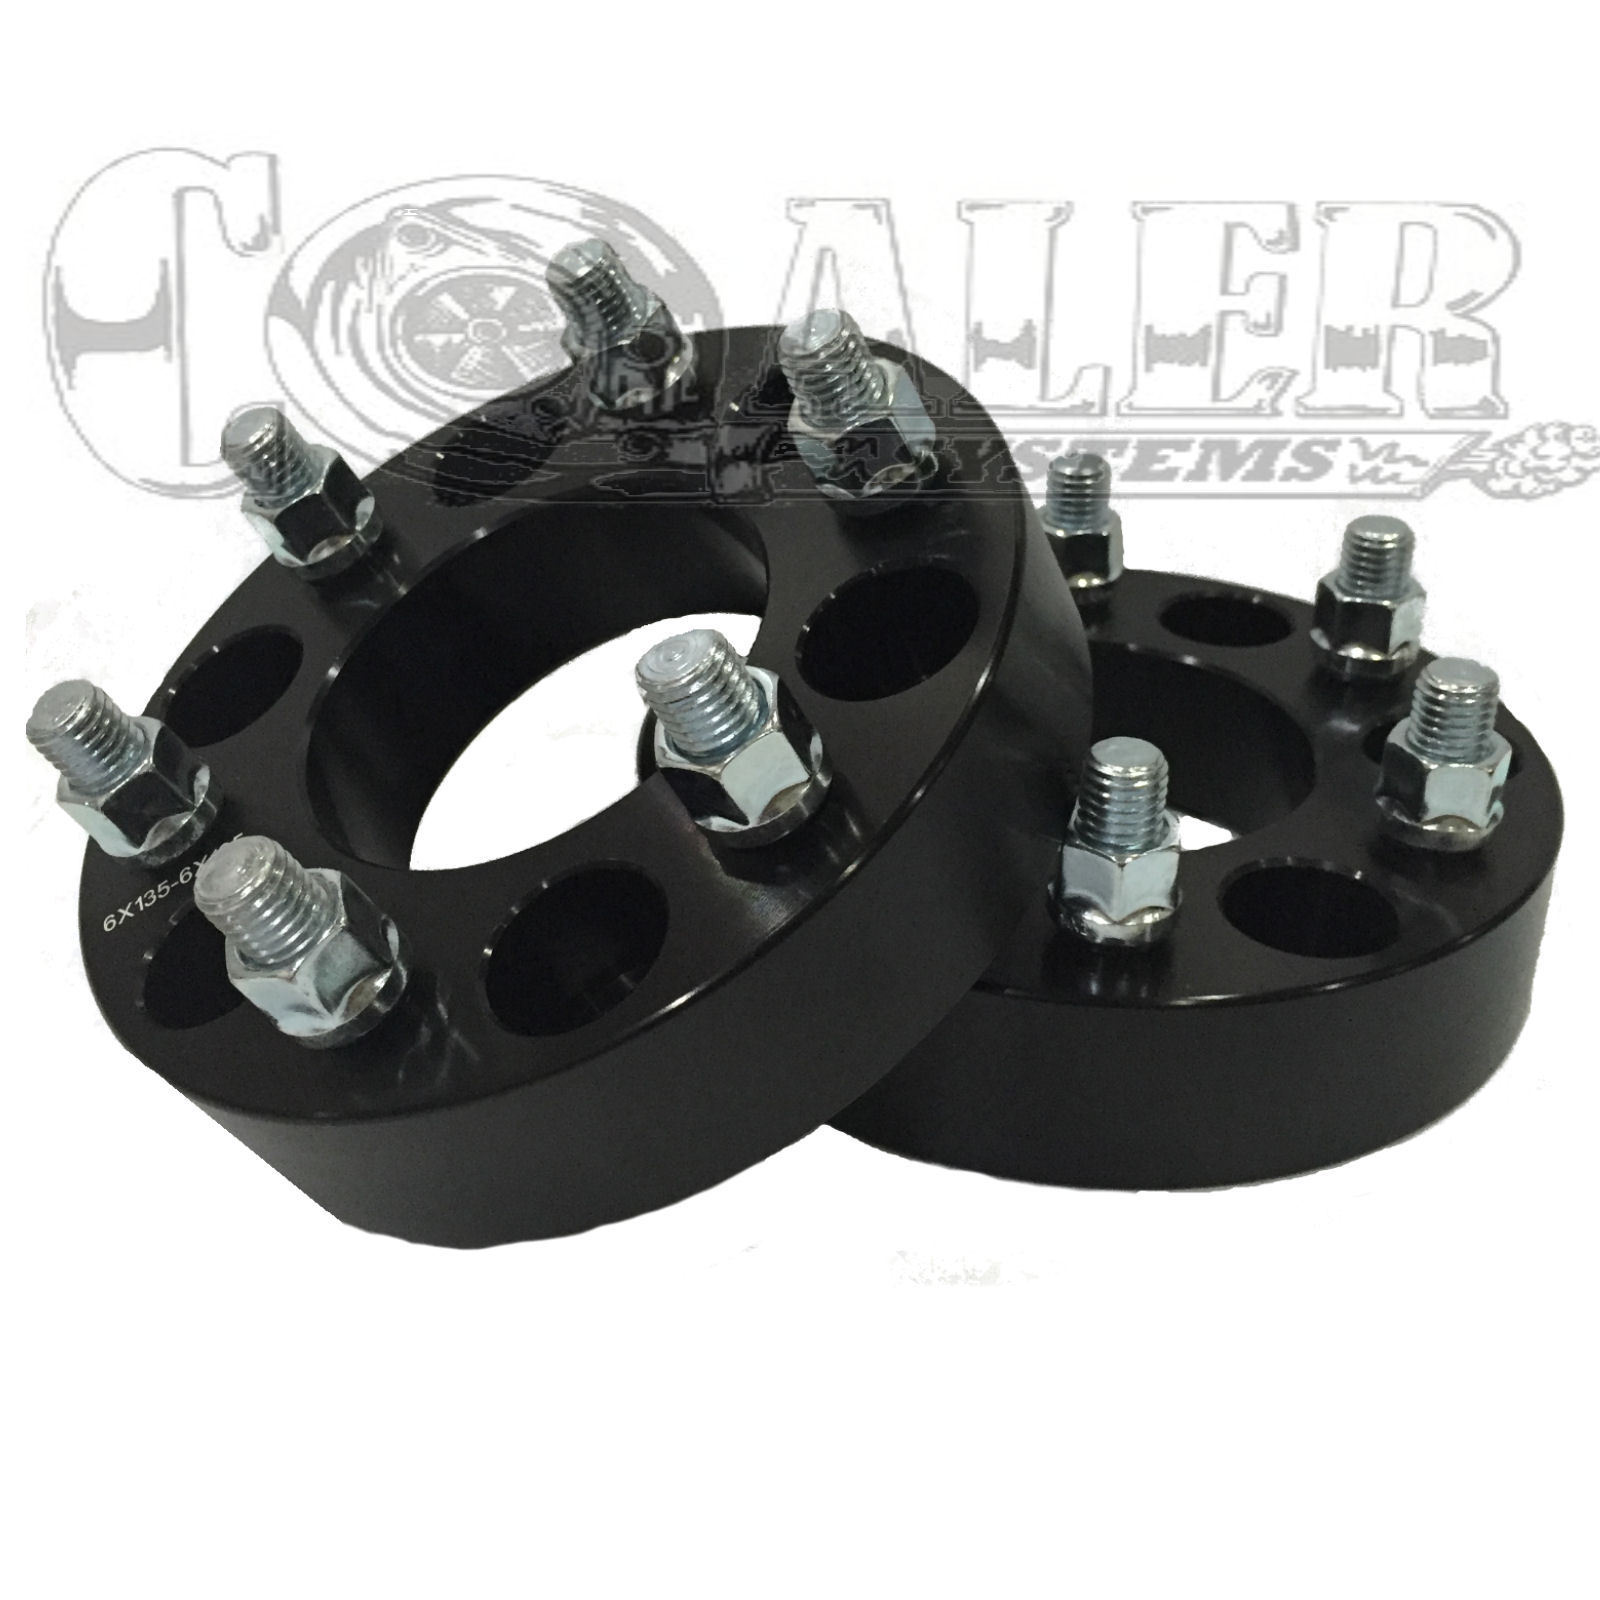 1 BLACK Wheel Spacer Ford F150 Expedition 03 04 05 06 07 08 09 10 11 12 13 14